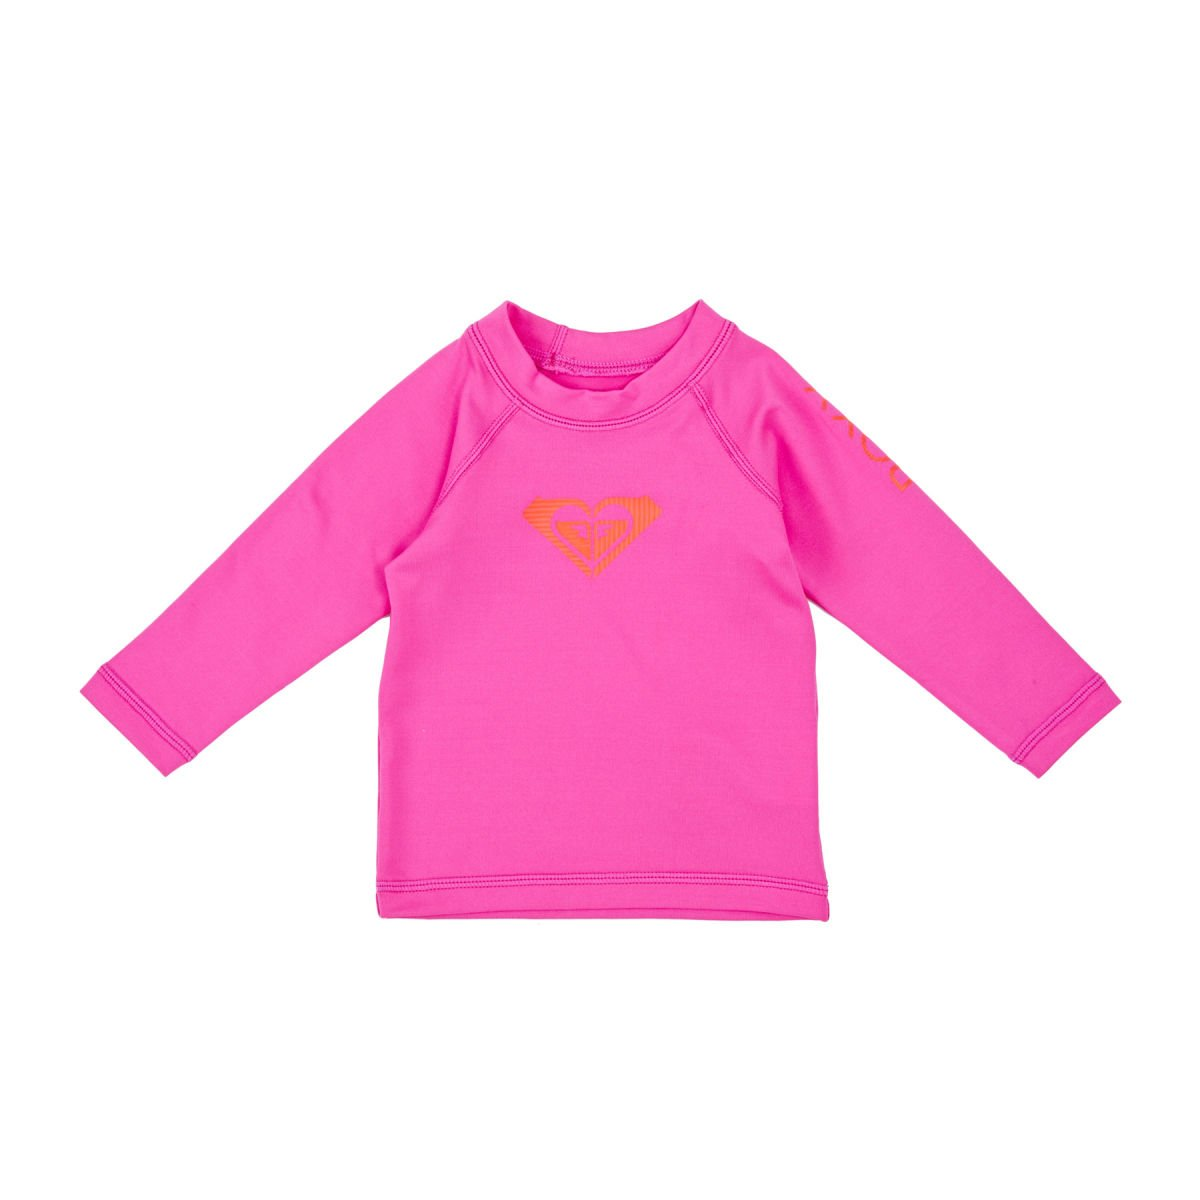 Roxy Baby-Girls Roxy Roxy Love Long Sleeve - Rashguard For Baby Arnwr03001 Paradise Pink 6M model